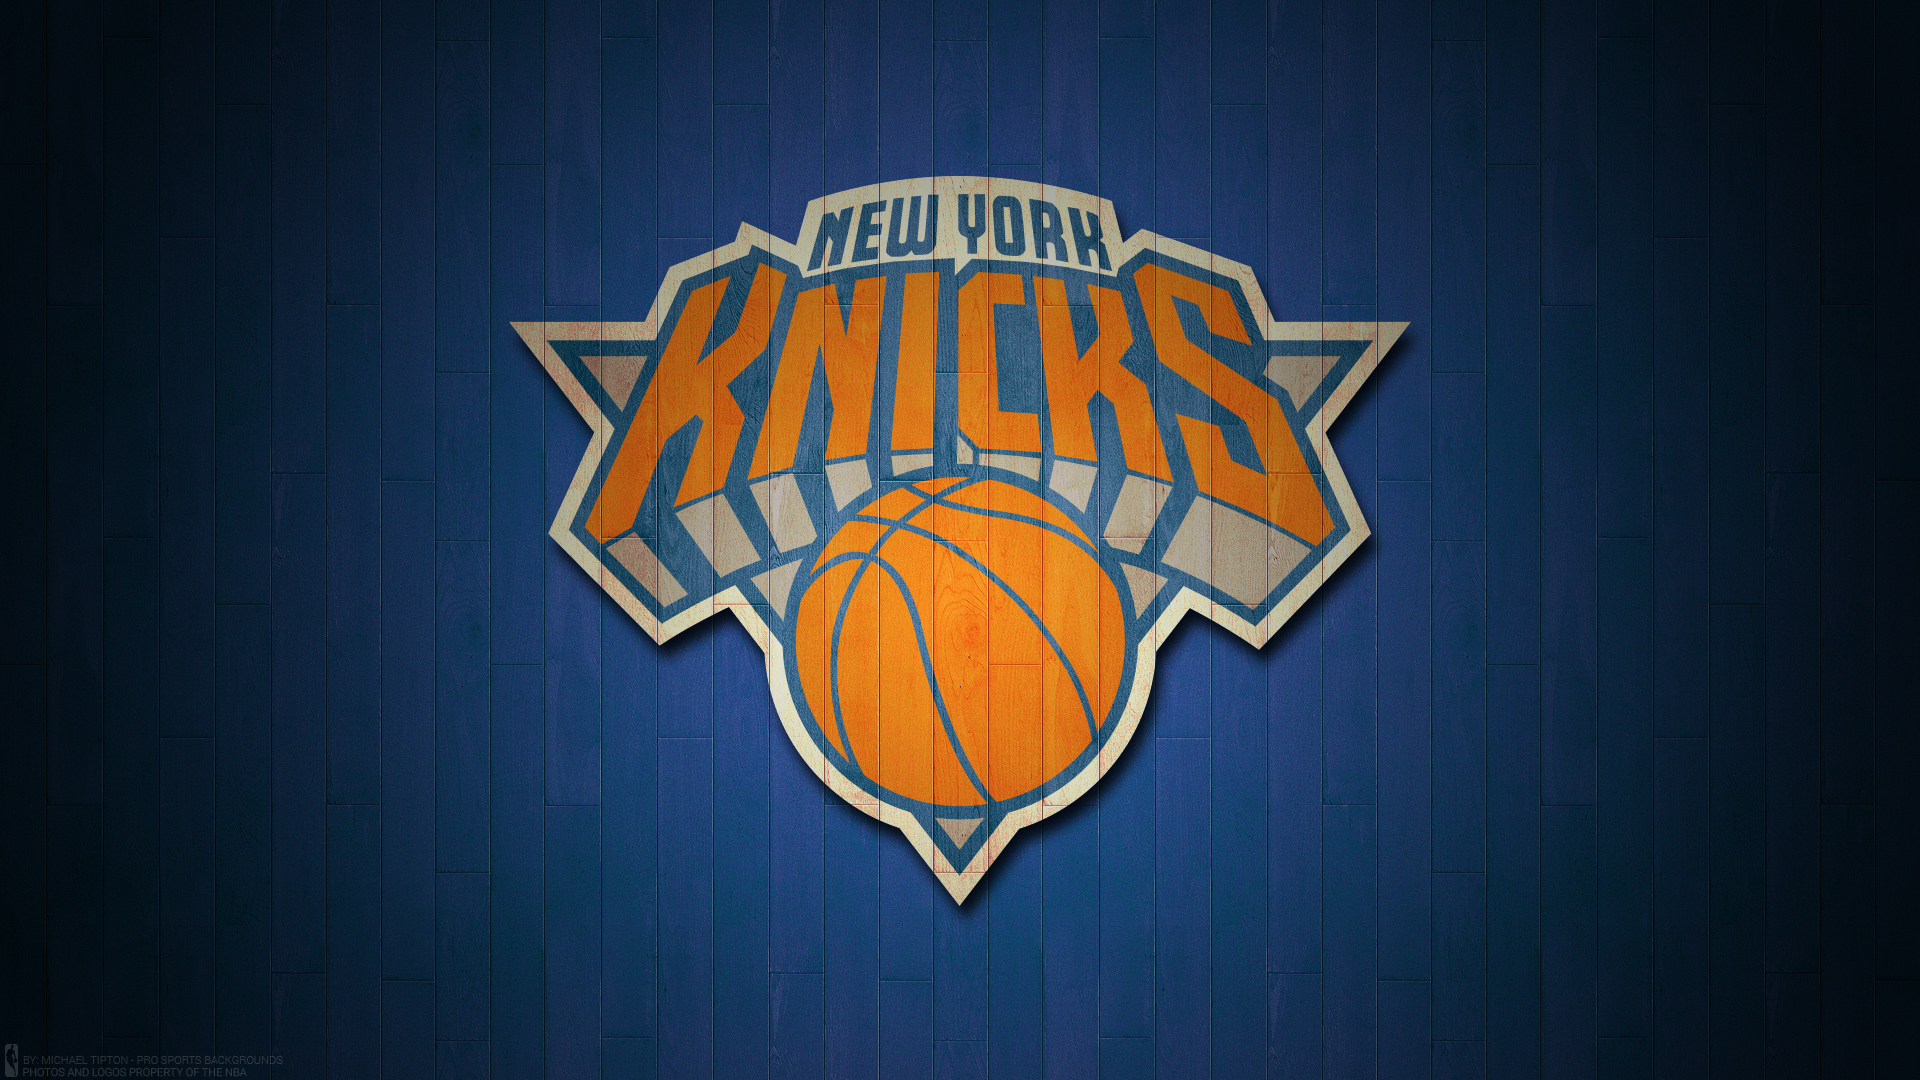 1920x1080 - New York Knicks Wallpapers 12